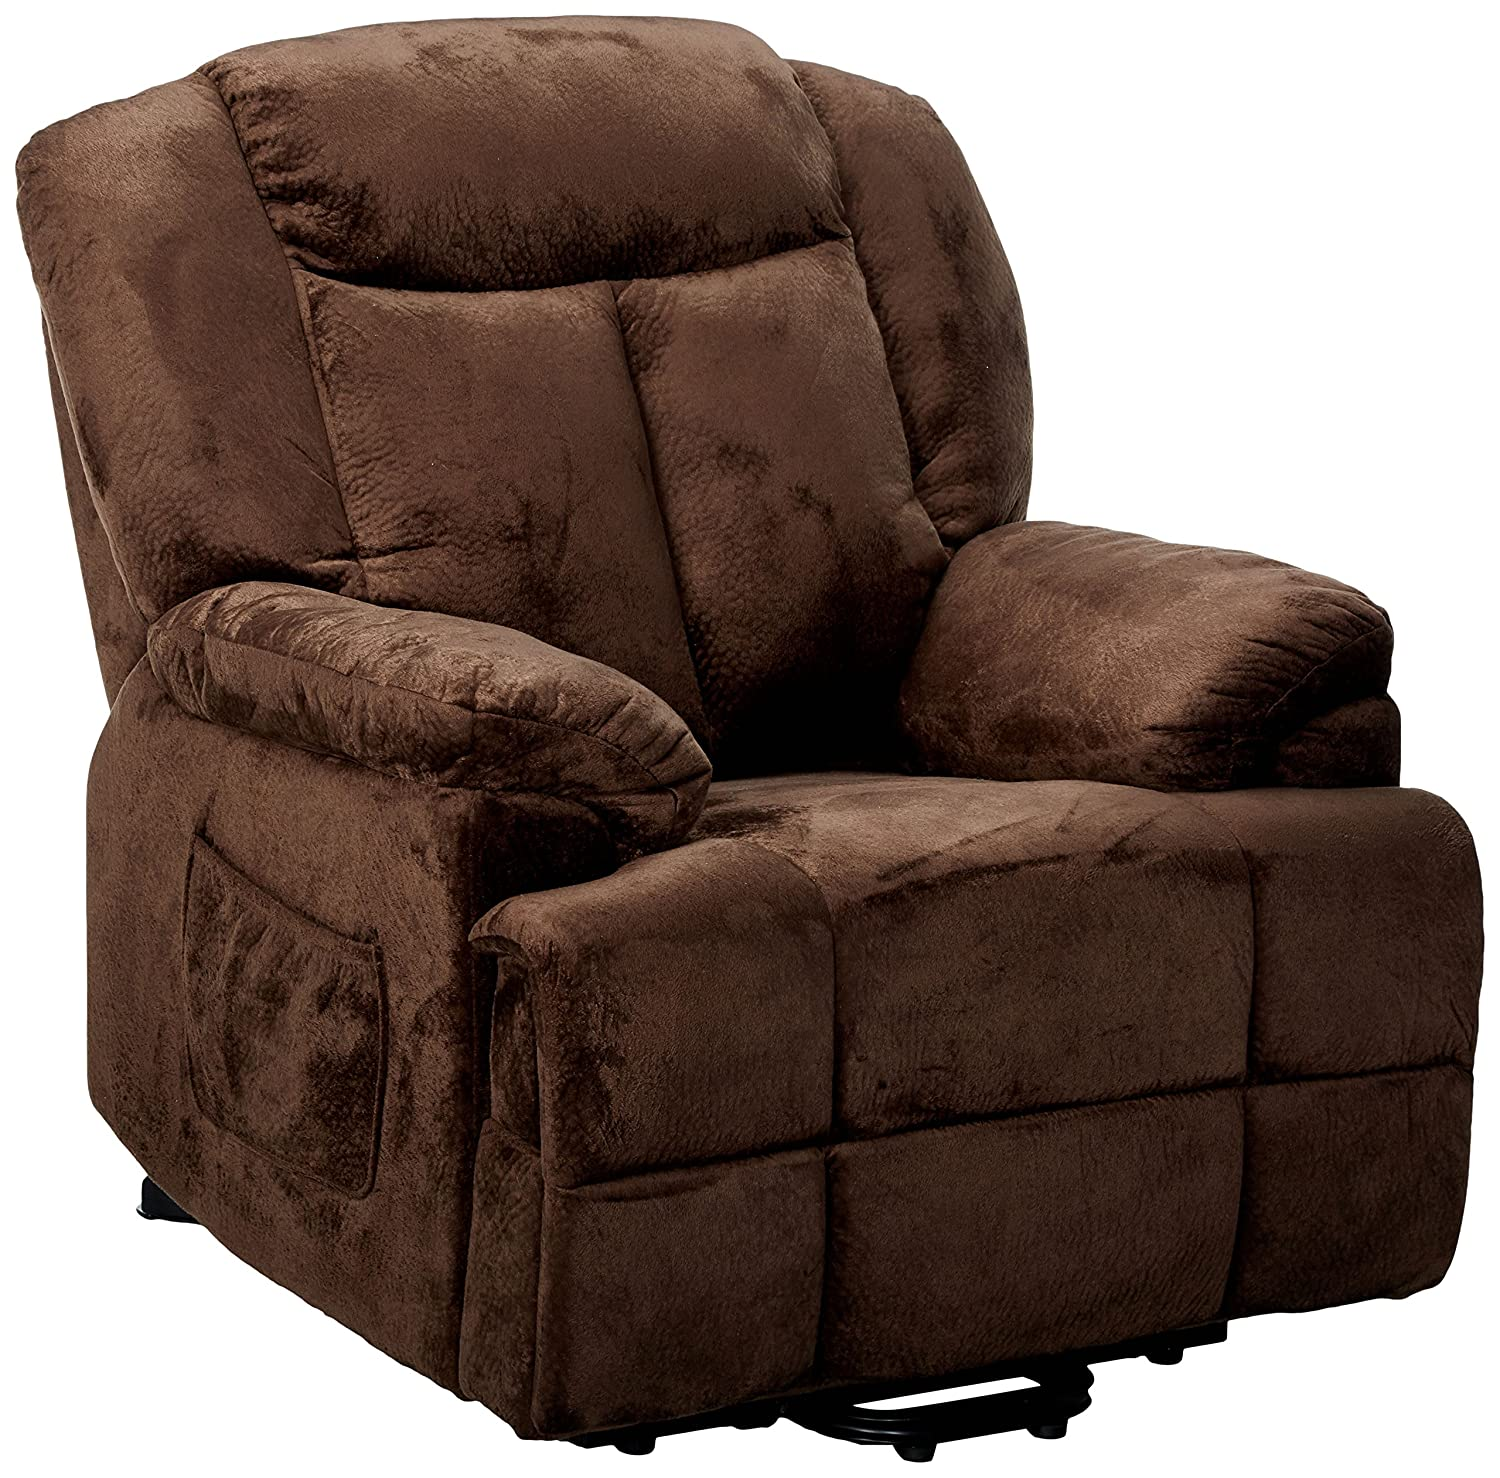 Velvet Power Lift Recliner Chocolate